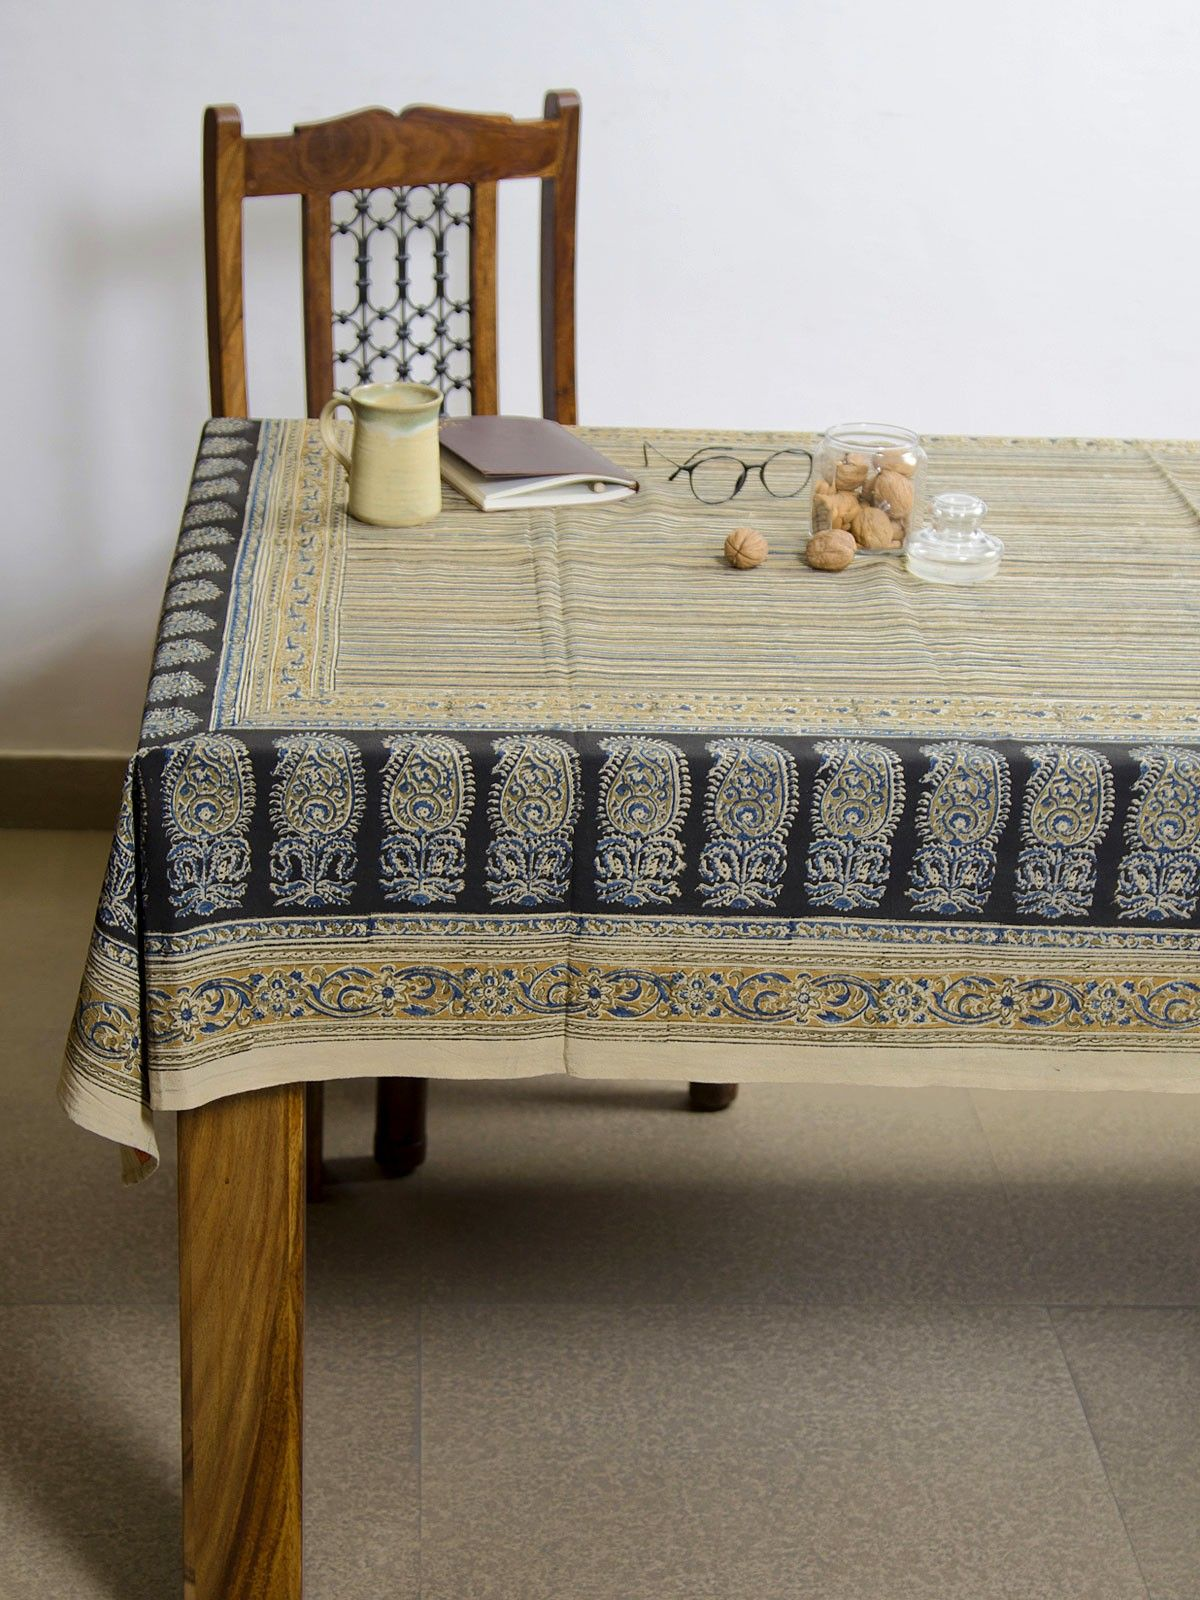 Charcoal Amra Kalamkari 6 seater table cover